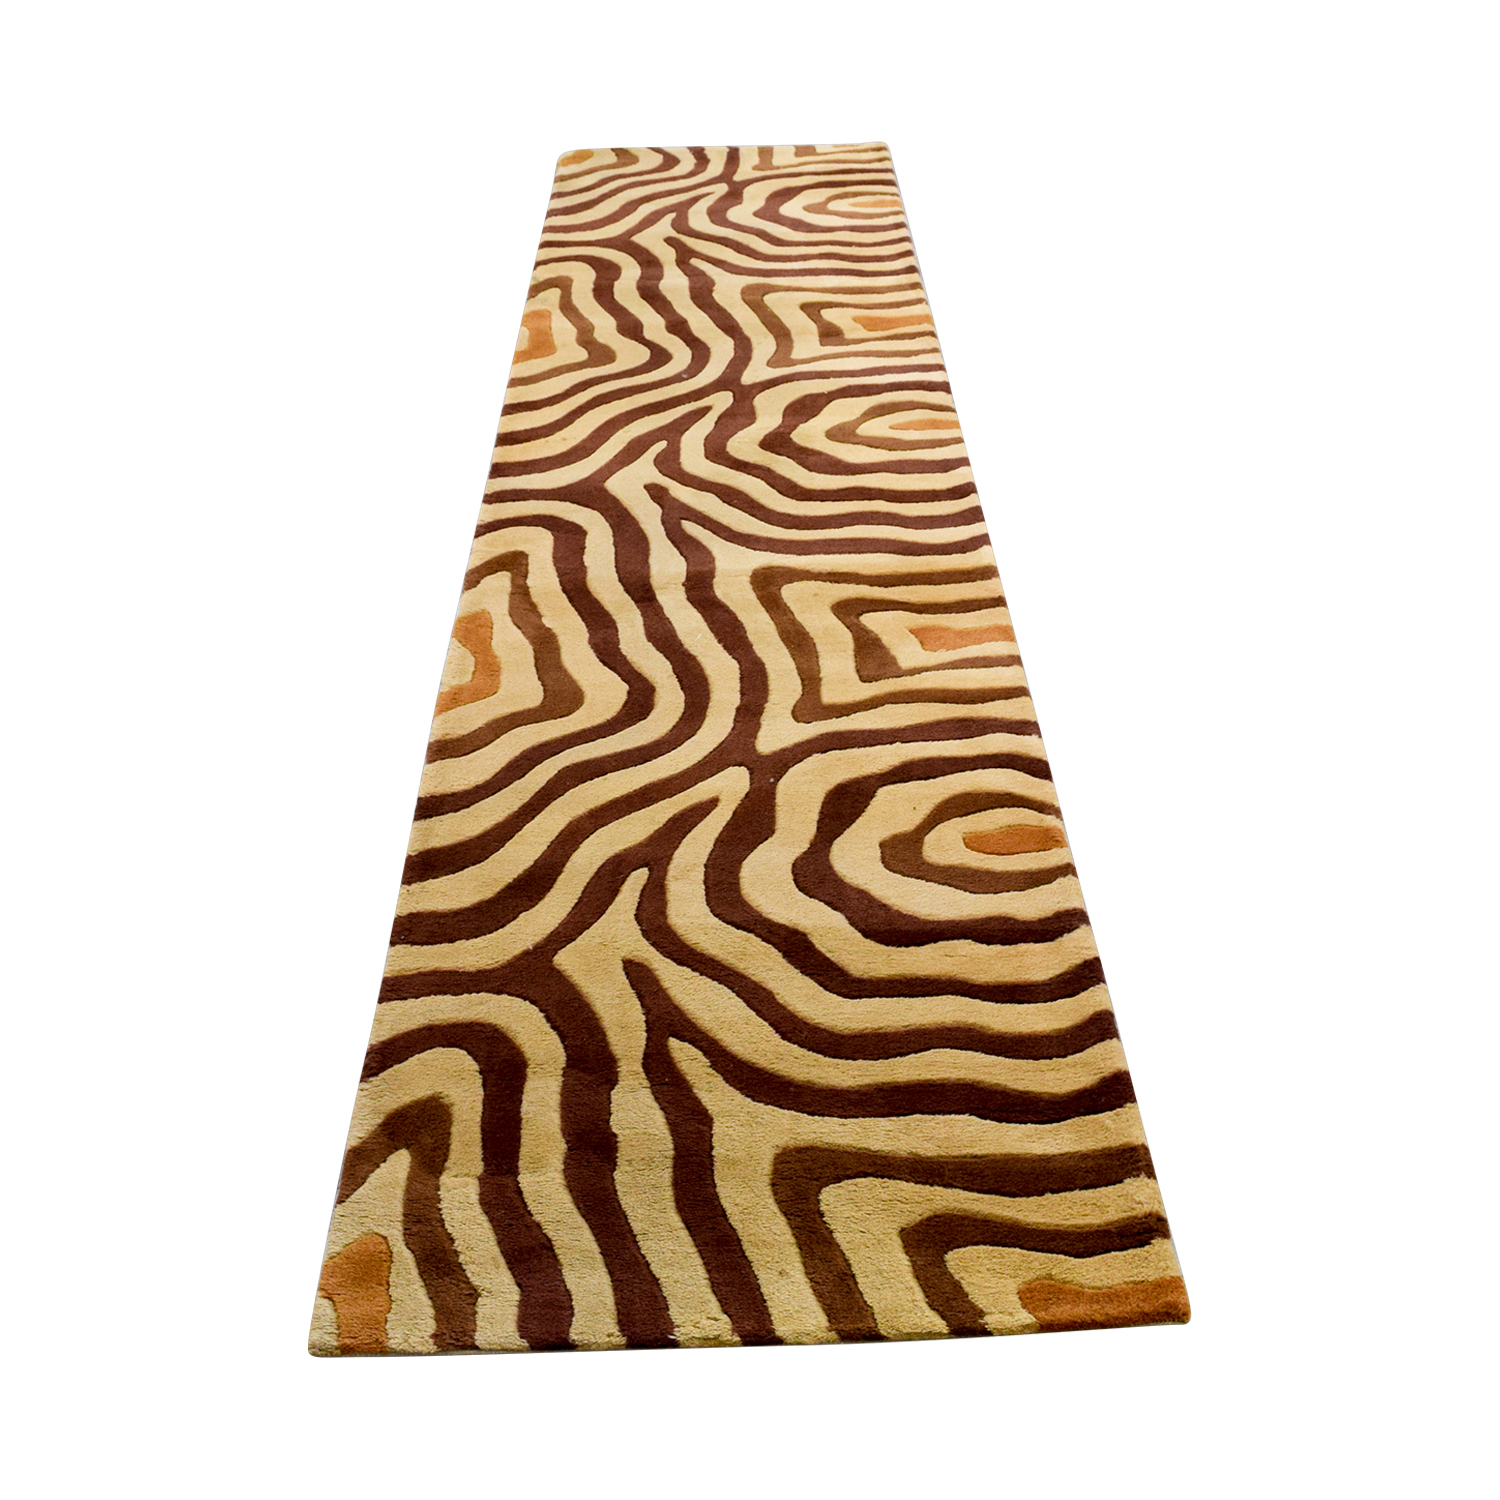 Momani Momani Wool New Wave Runner Rug price